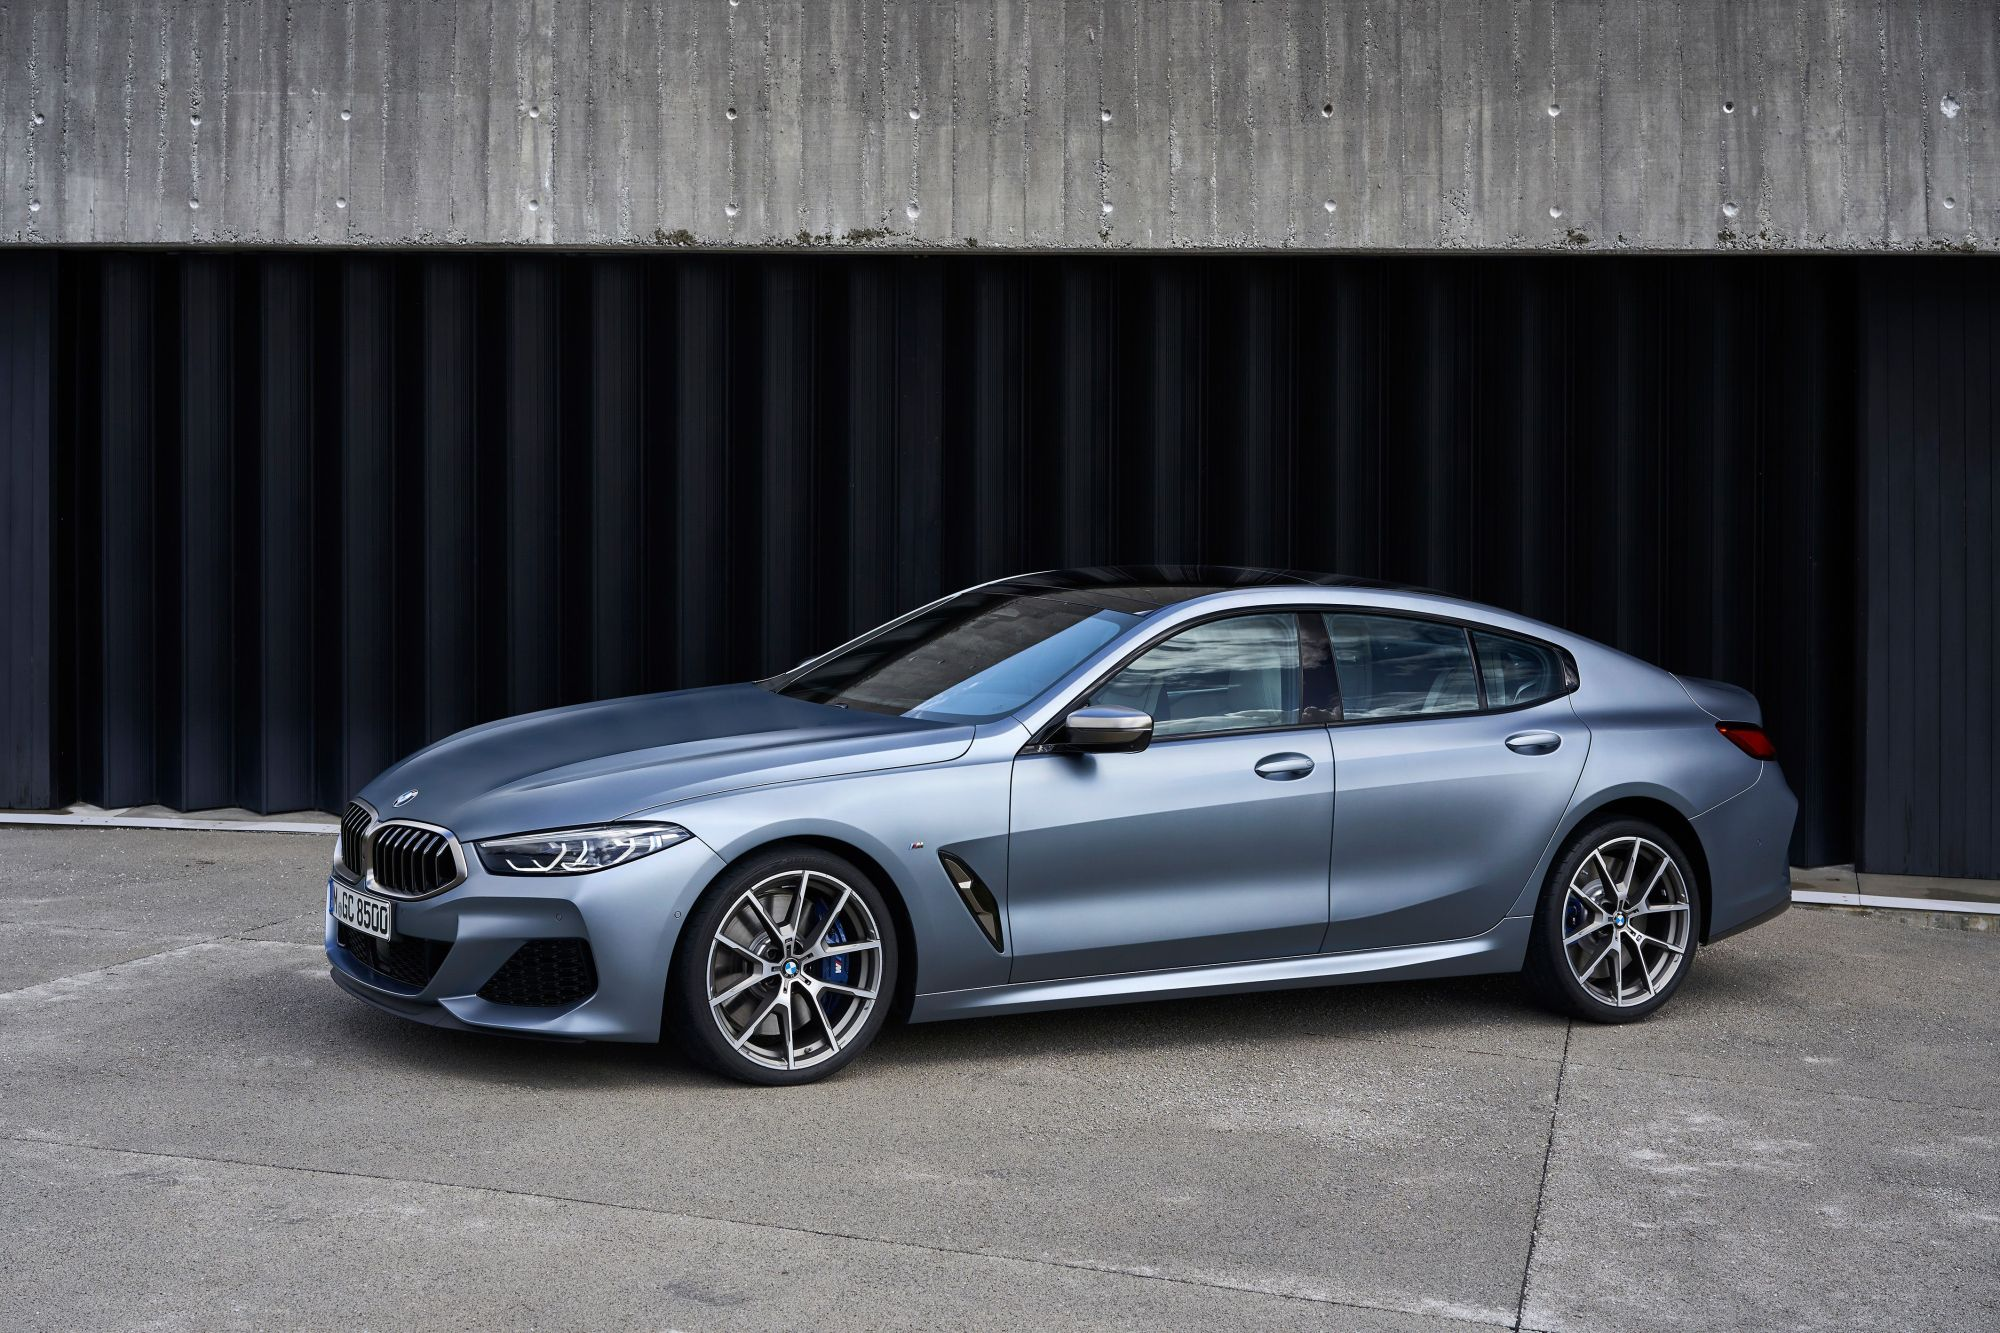 hight resolution of bmw 8 series wiring schematic diagram 183 insuranceblog asia 2020 bmw 8 series gran coupe is